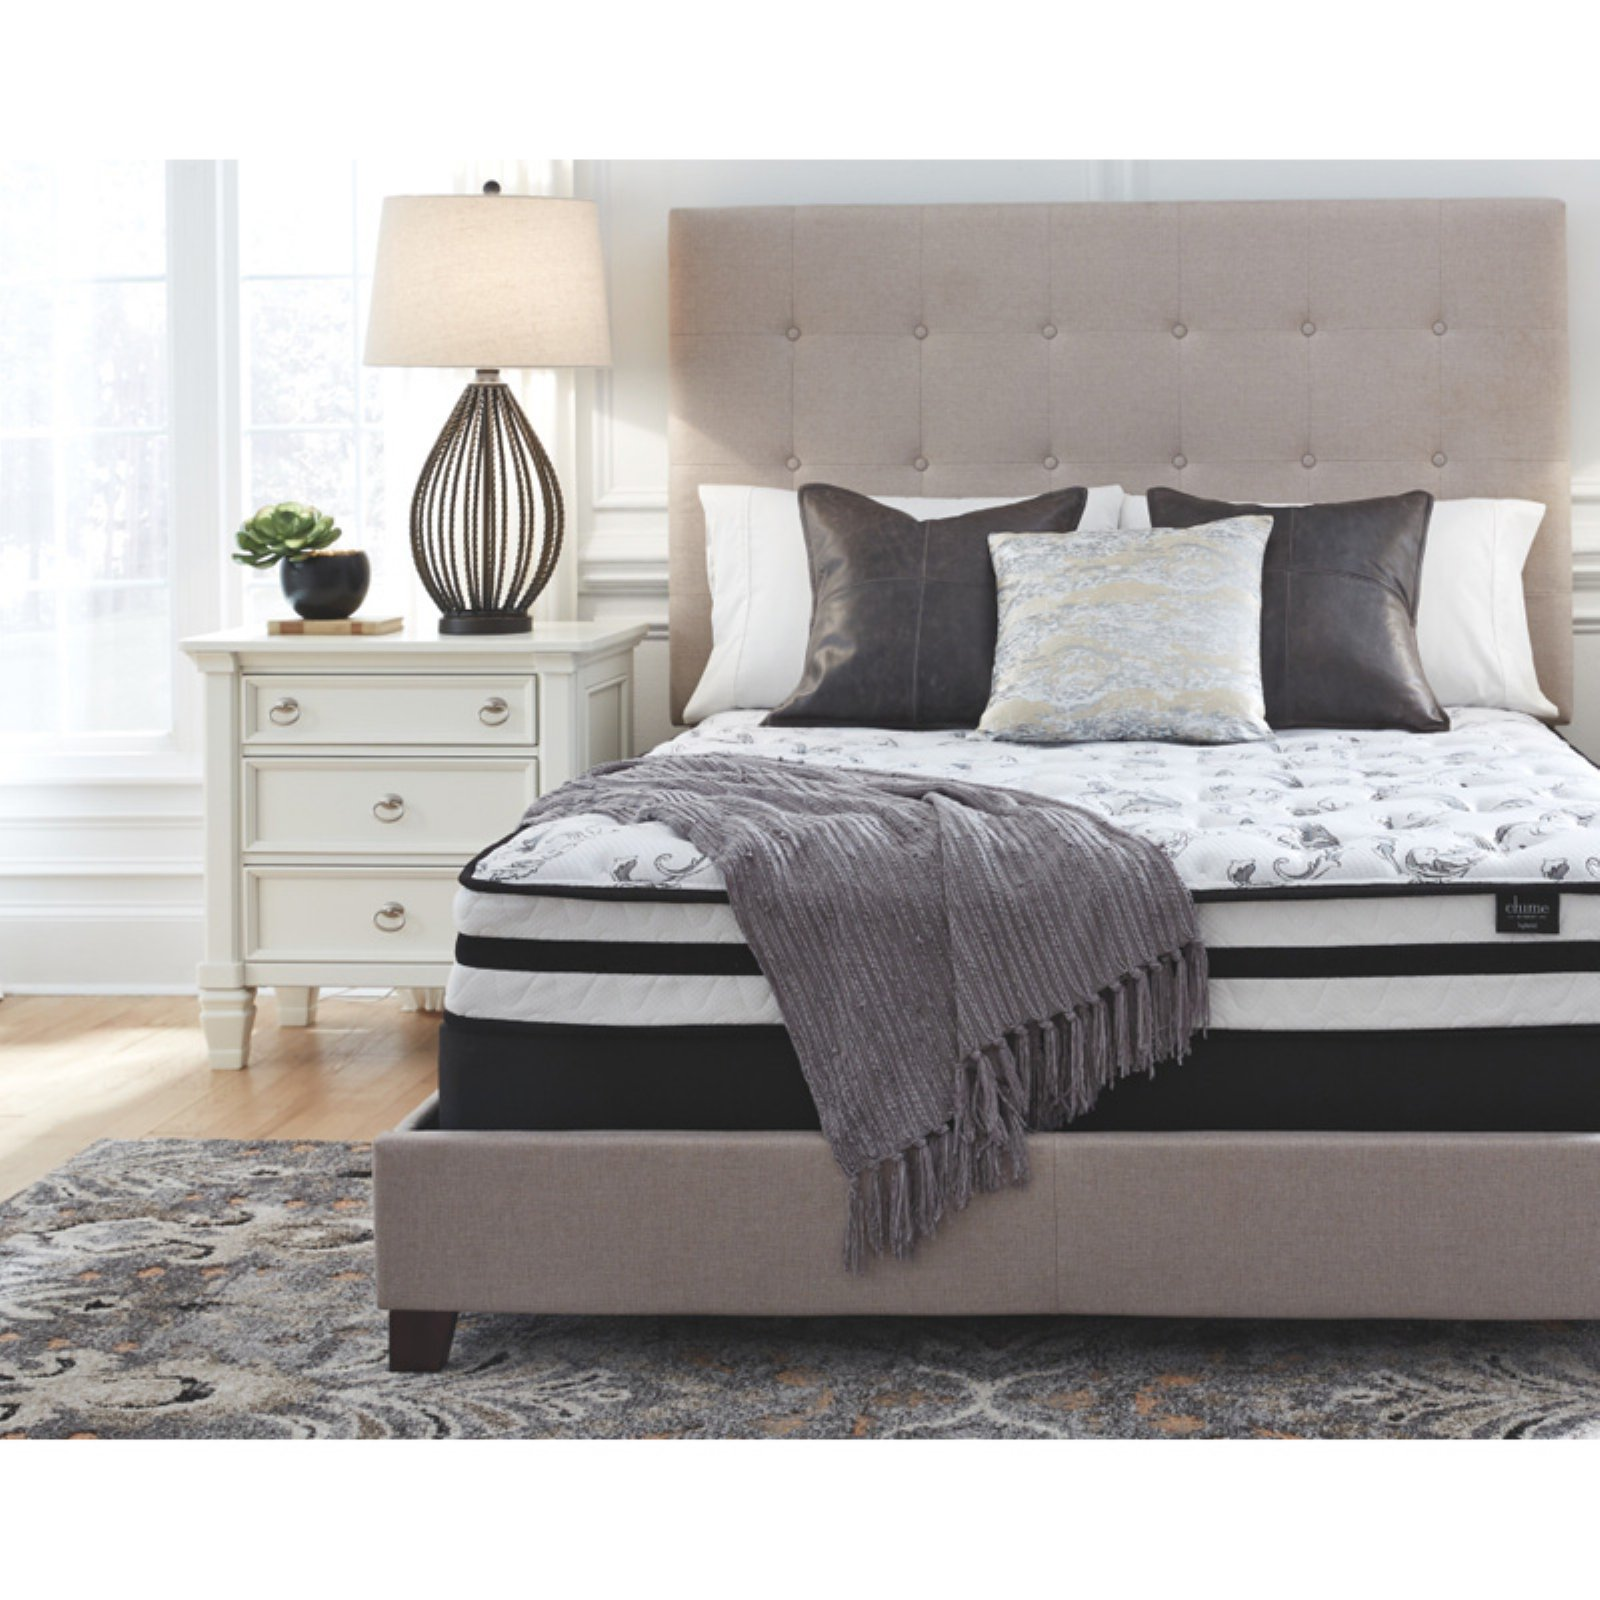 Signature Design by Ashley 8 Inch Chime Innerspring Mattress